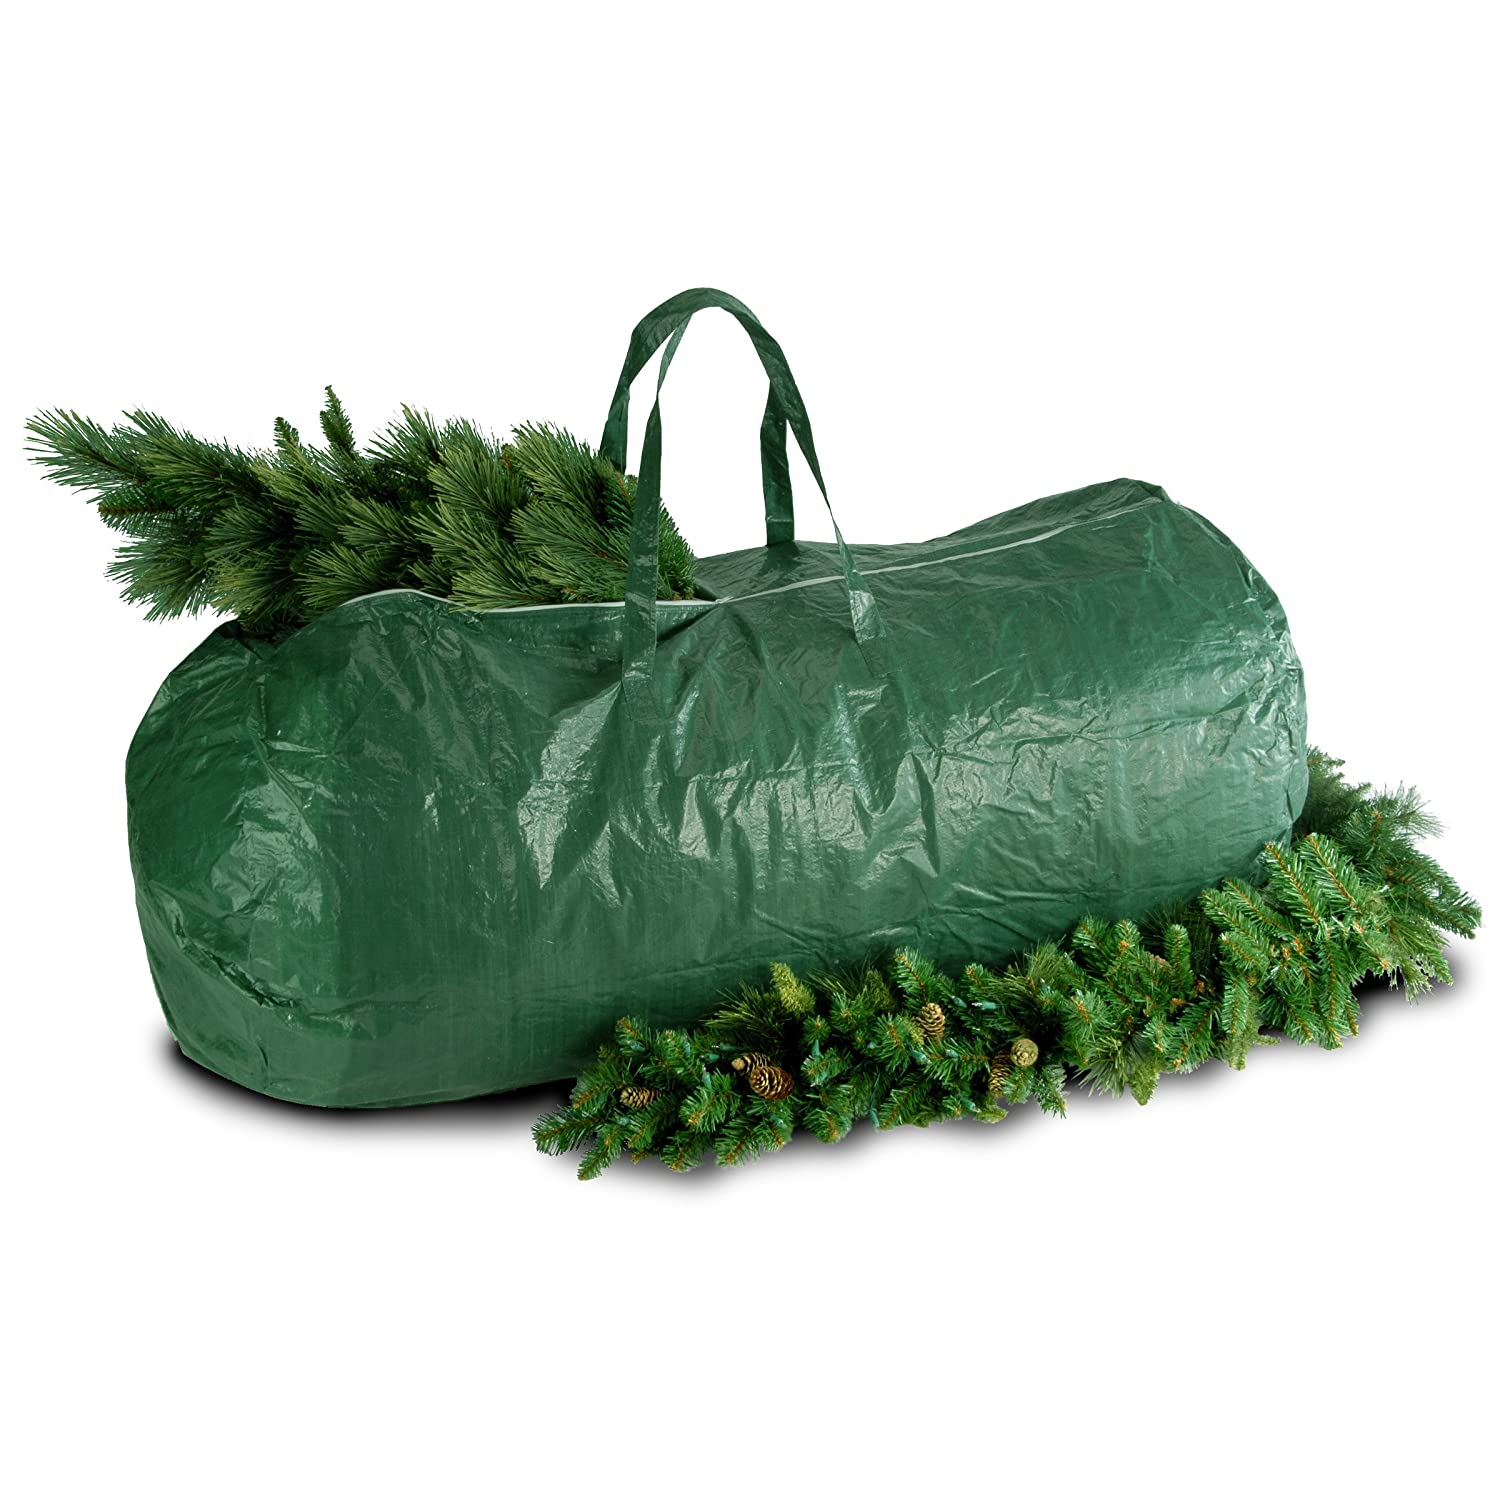 Storage bags for christmas trees - Amazon Com National Tree Heavy Duty Tree Storage Bag With Handles And Zipper Fits Up To 9 Foot S A Tbag1 Home Kitchen